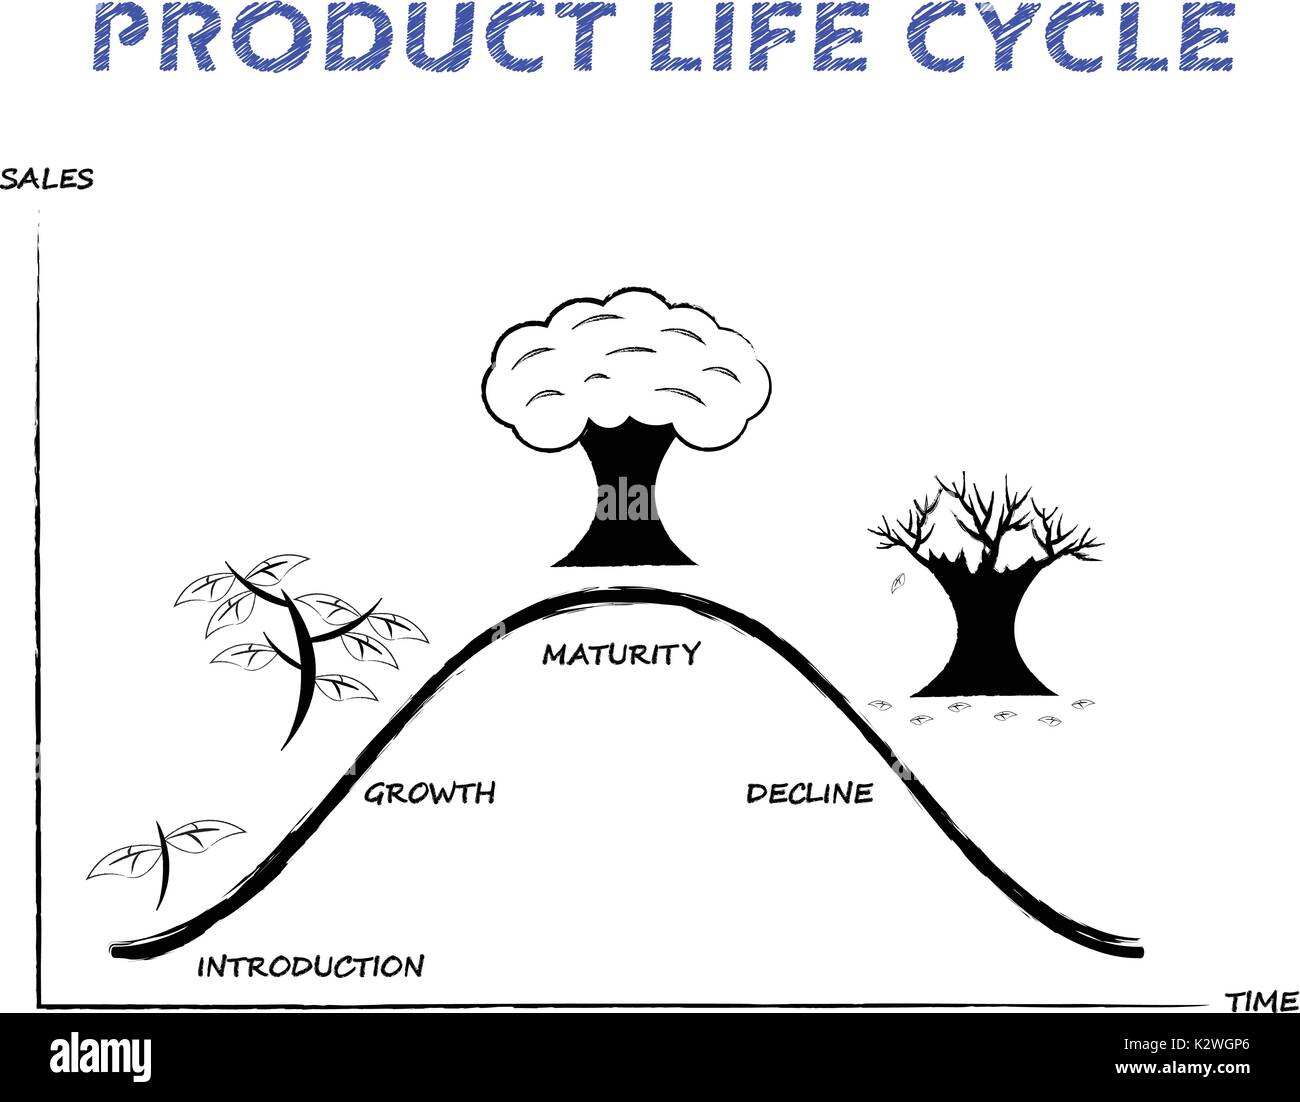 hight resolution of black white product life cycle diagram is drew by pencil on white background as tree growing four stages introduction growth maturity decline